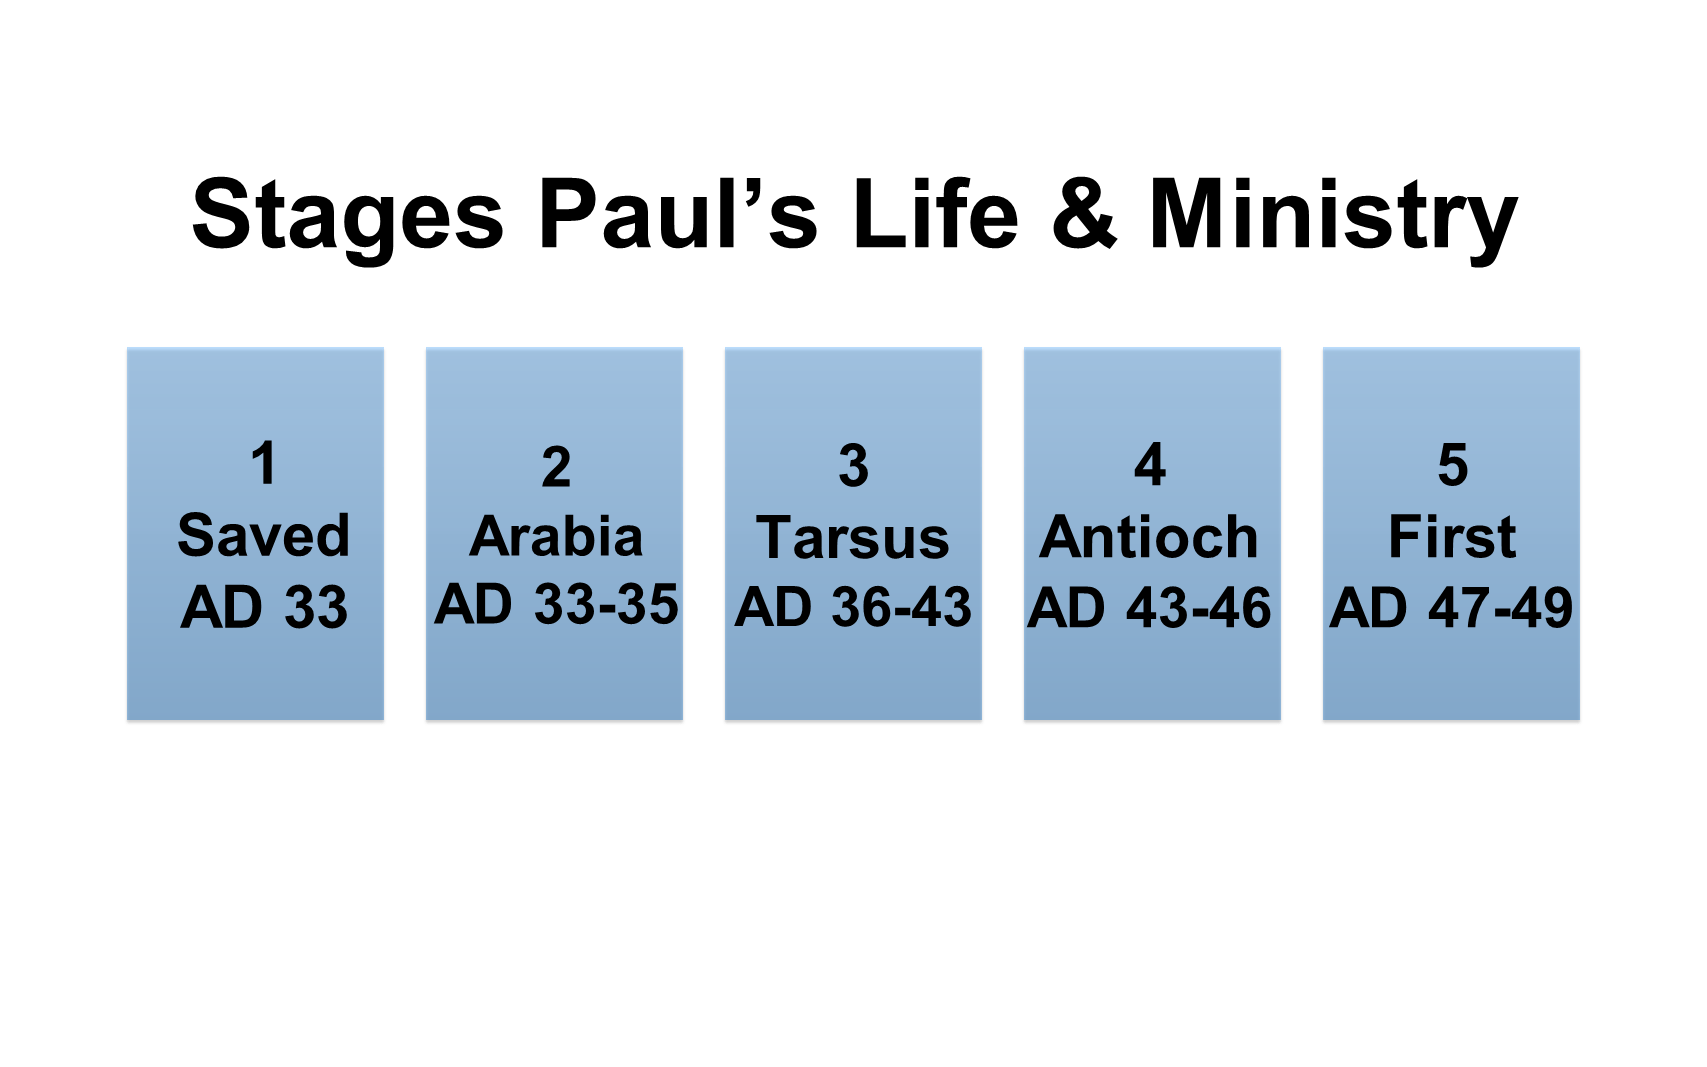 ESH-23 - The Discipline Of Disciple-Making - Paul - Used By God To Change The World (11)